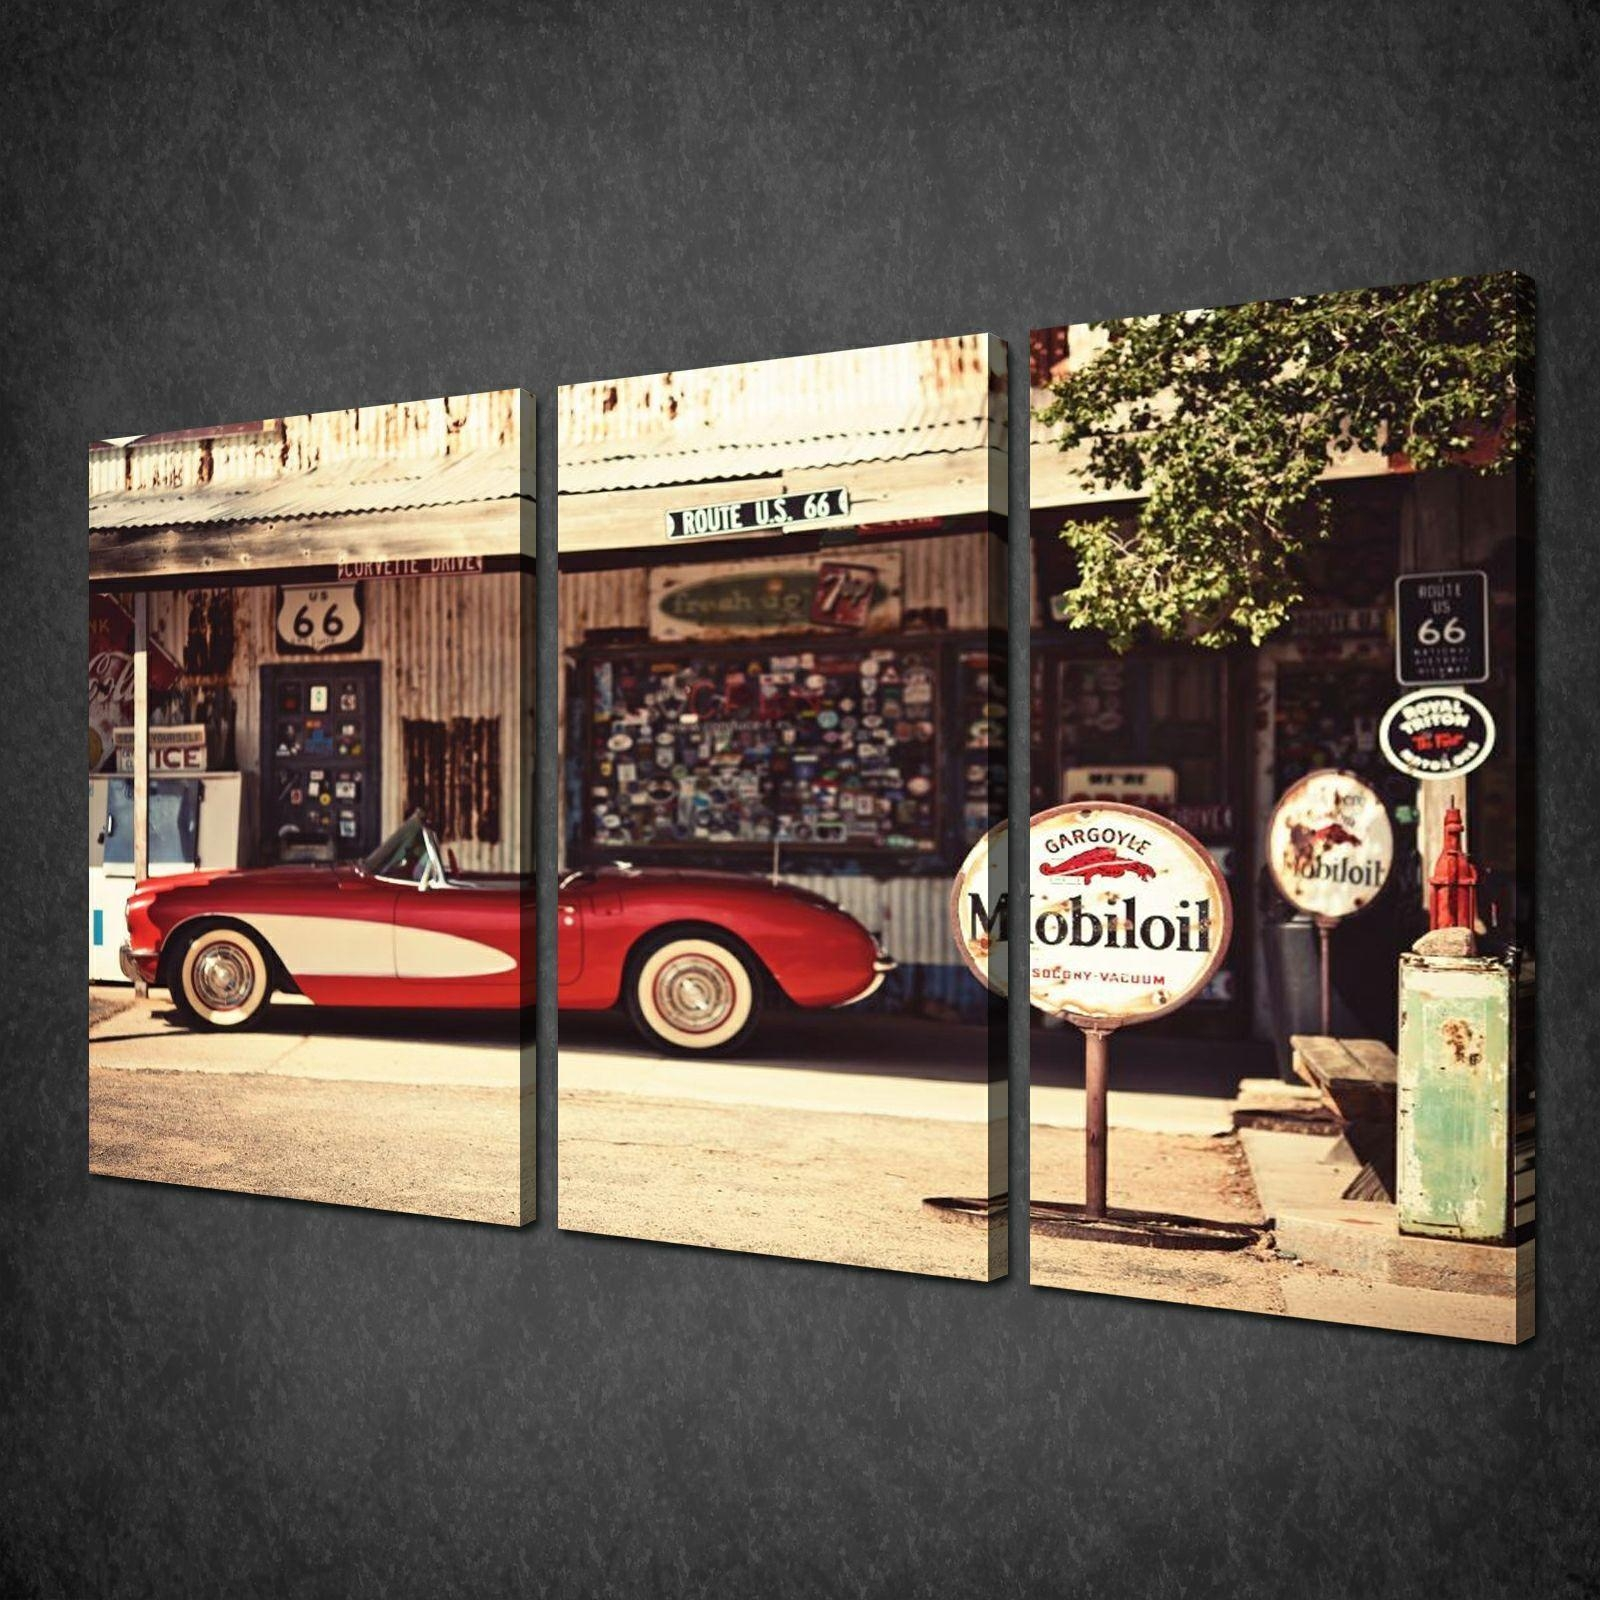 Automotive Wall Art Luxury Large Wall Art On Black And White Wall Pertaining To Large Vintage Wall Art (Image 2 of 20)